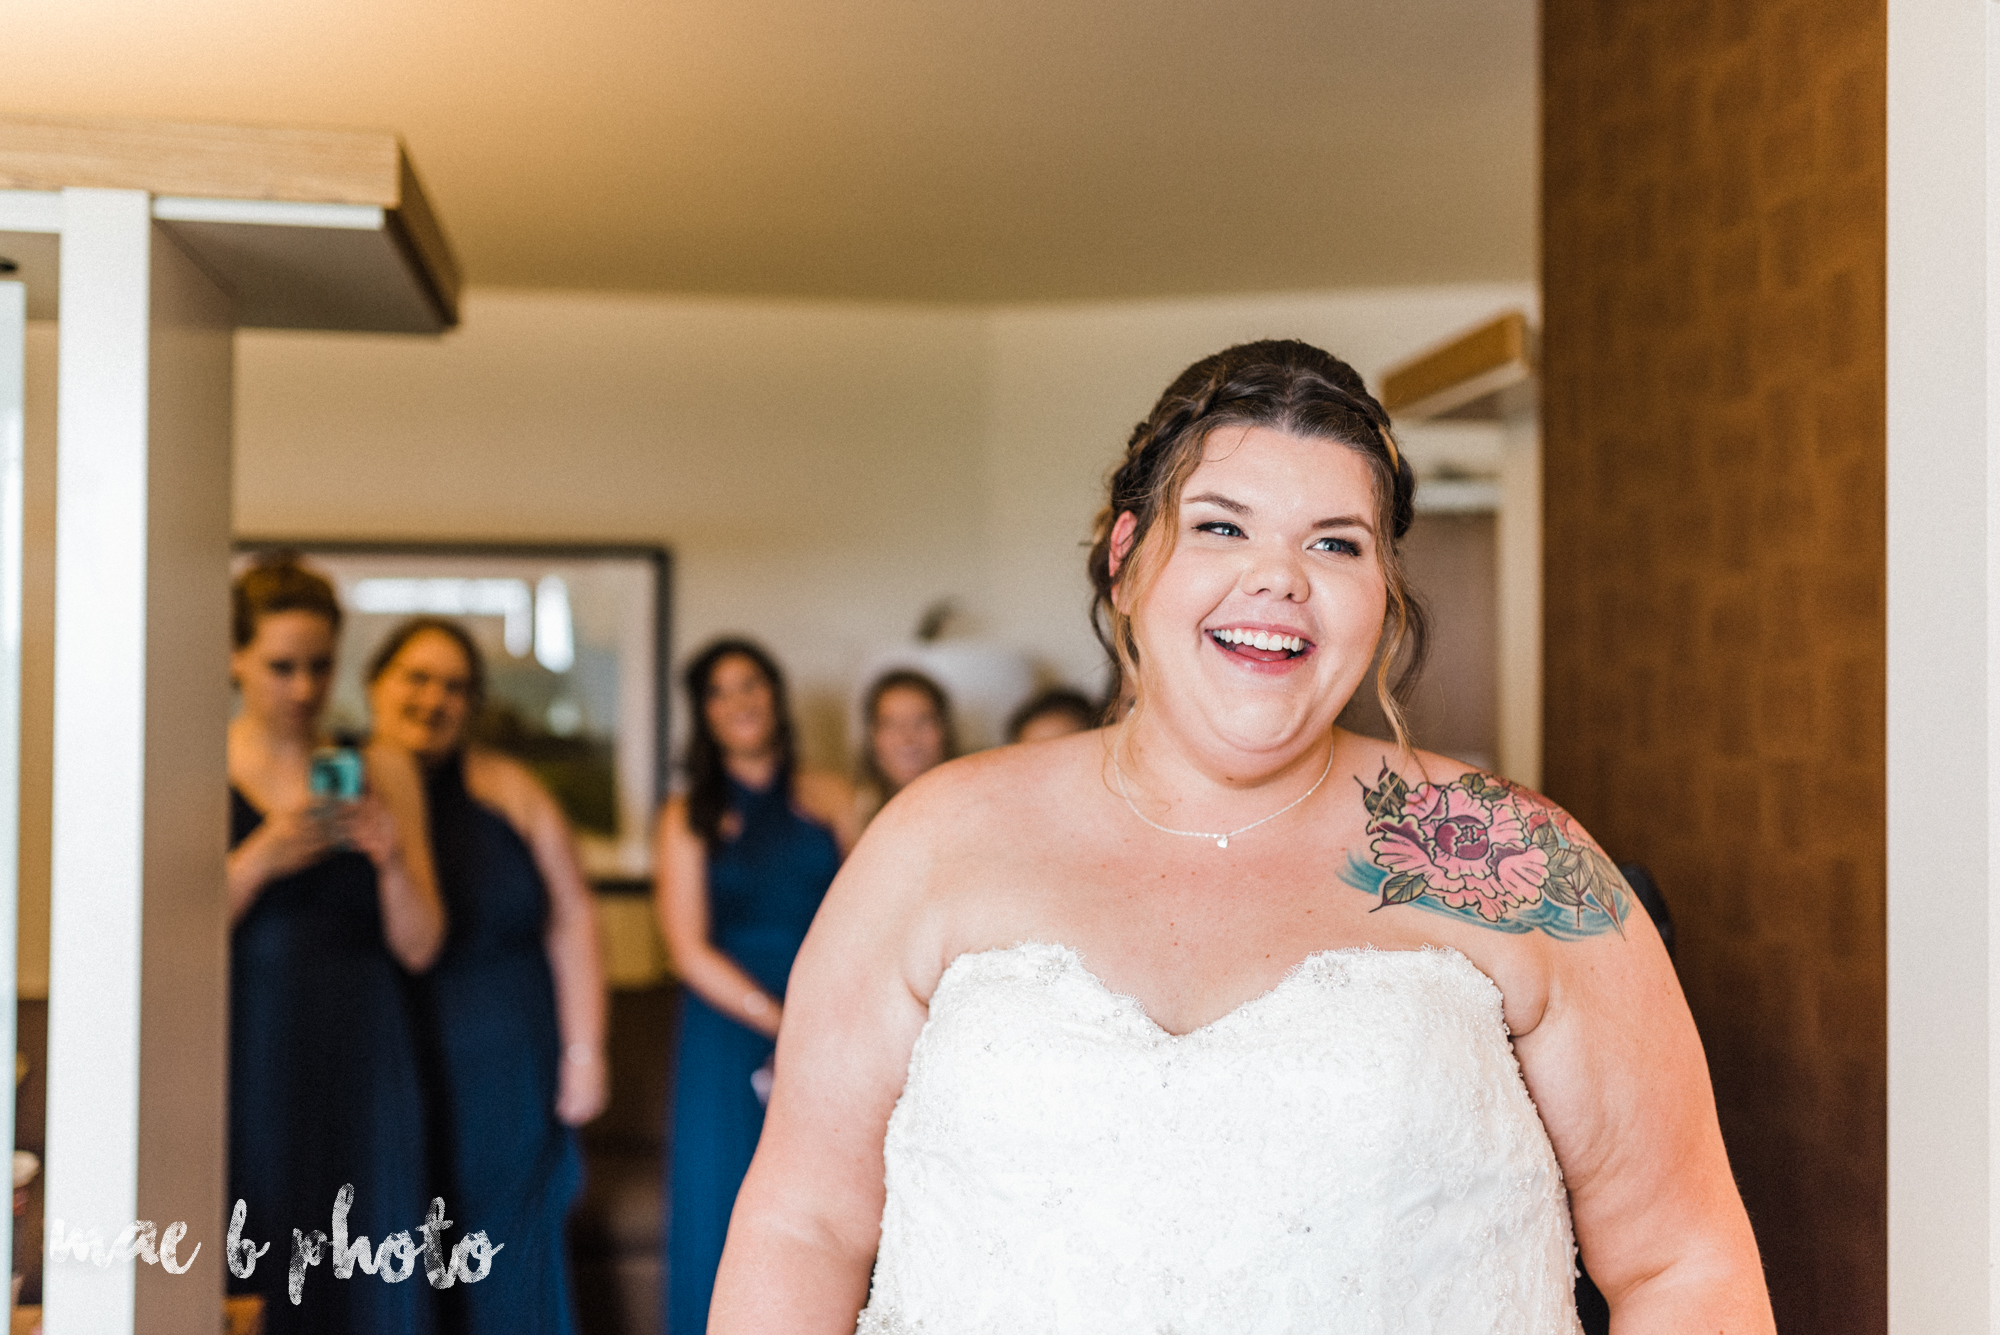 Kristina and ryan's personal vintage glam fall wedding at disalvo's station restaurant and the arnold palmer latrobe country club in latrobe, pa photographed by youngstown wedding photographer mae b photo-14.jpg